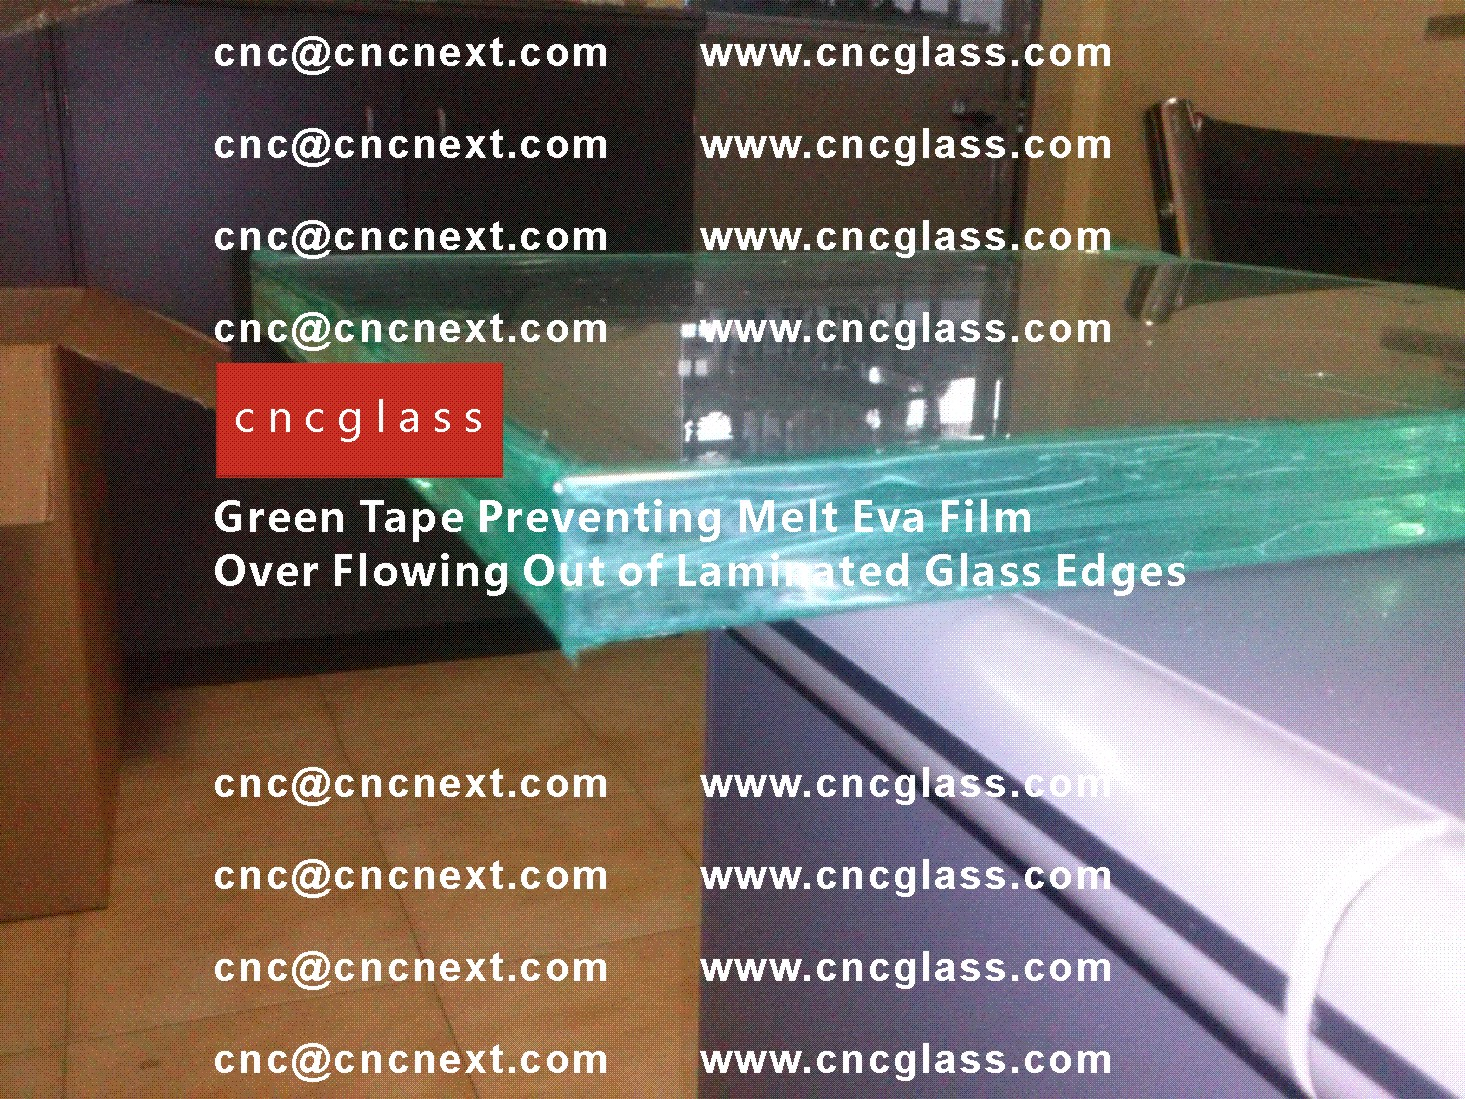 001 Green Tape Preventing Melt Eva Film Over Flowing Out of Laminated Glass Edges